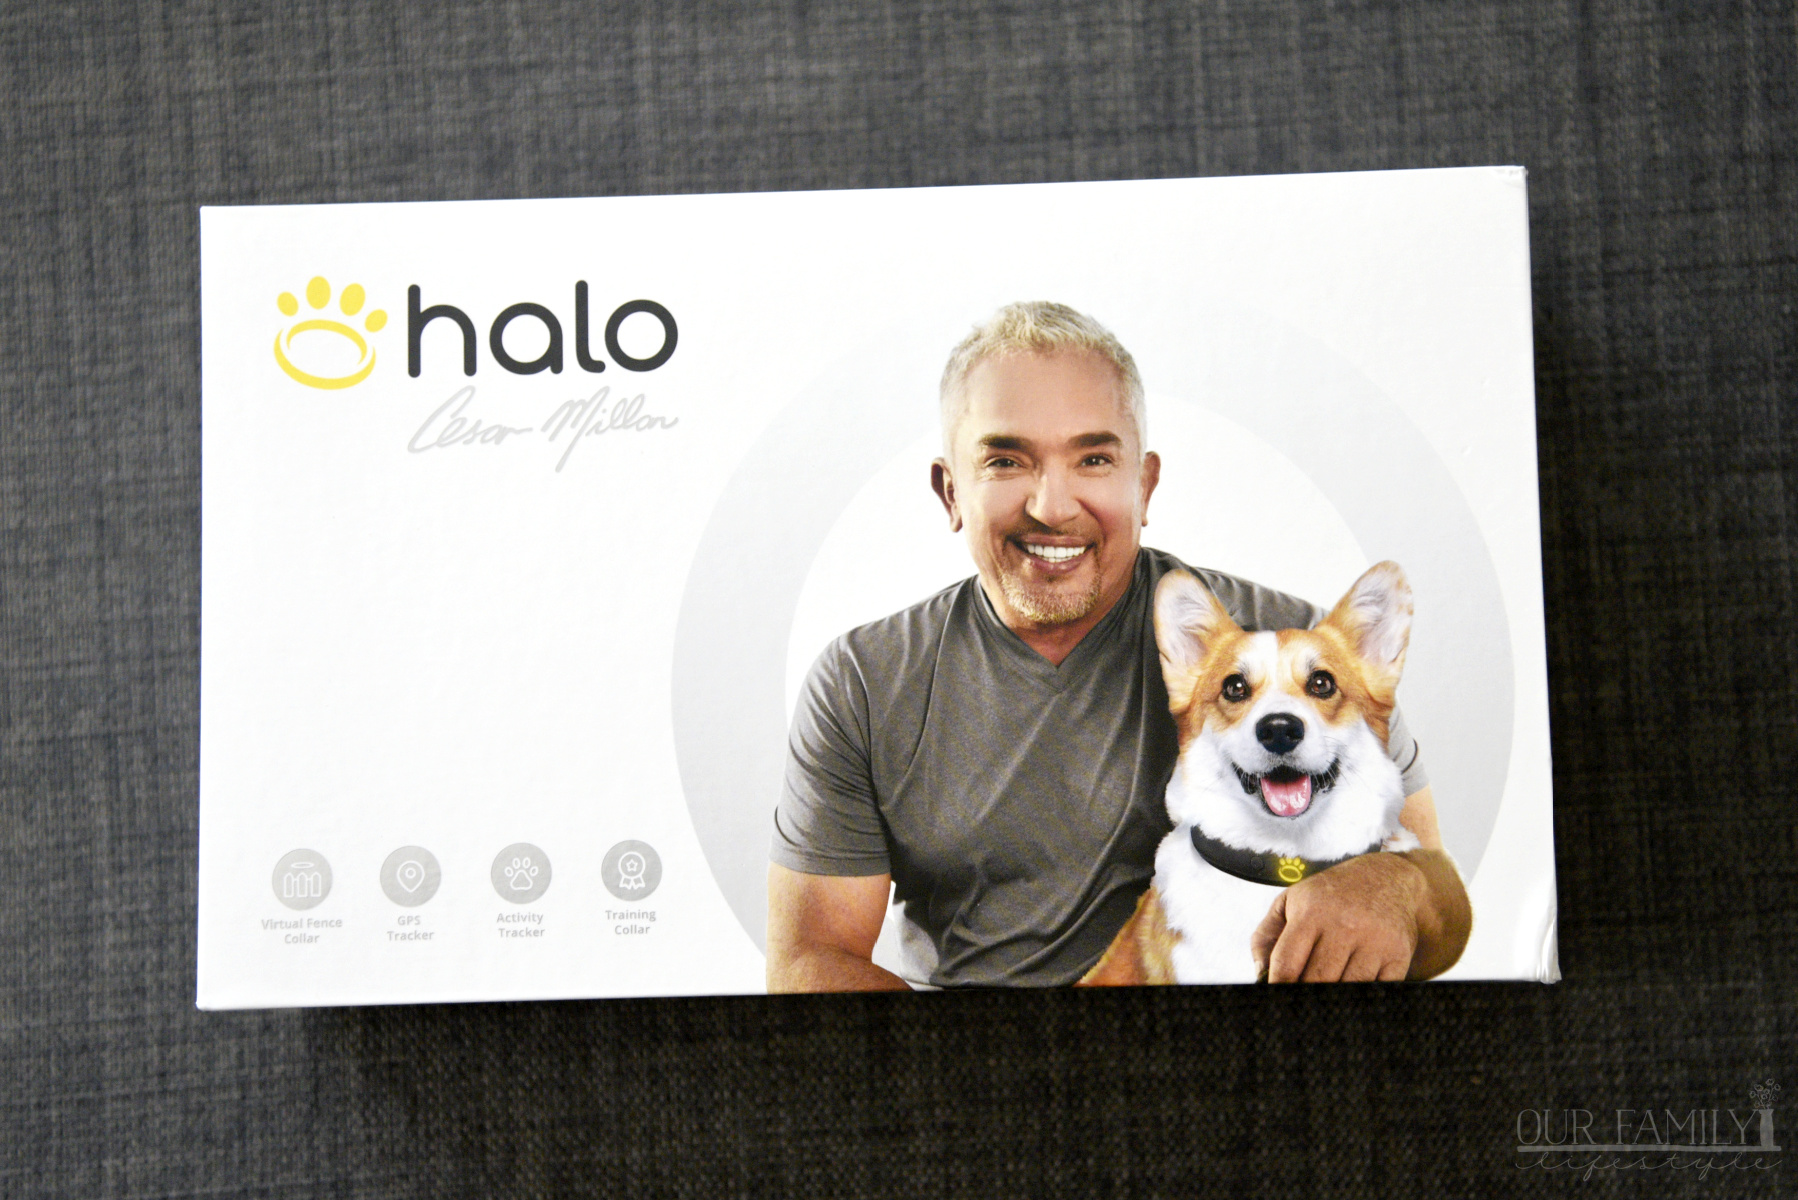 The Halo Collar Cesar Millan